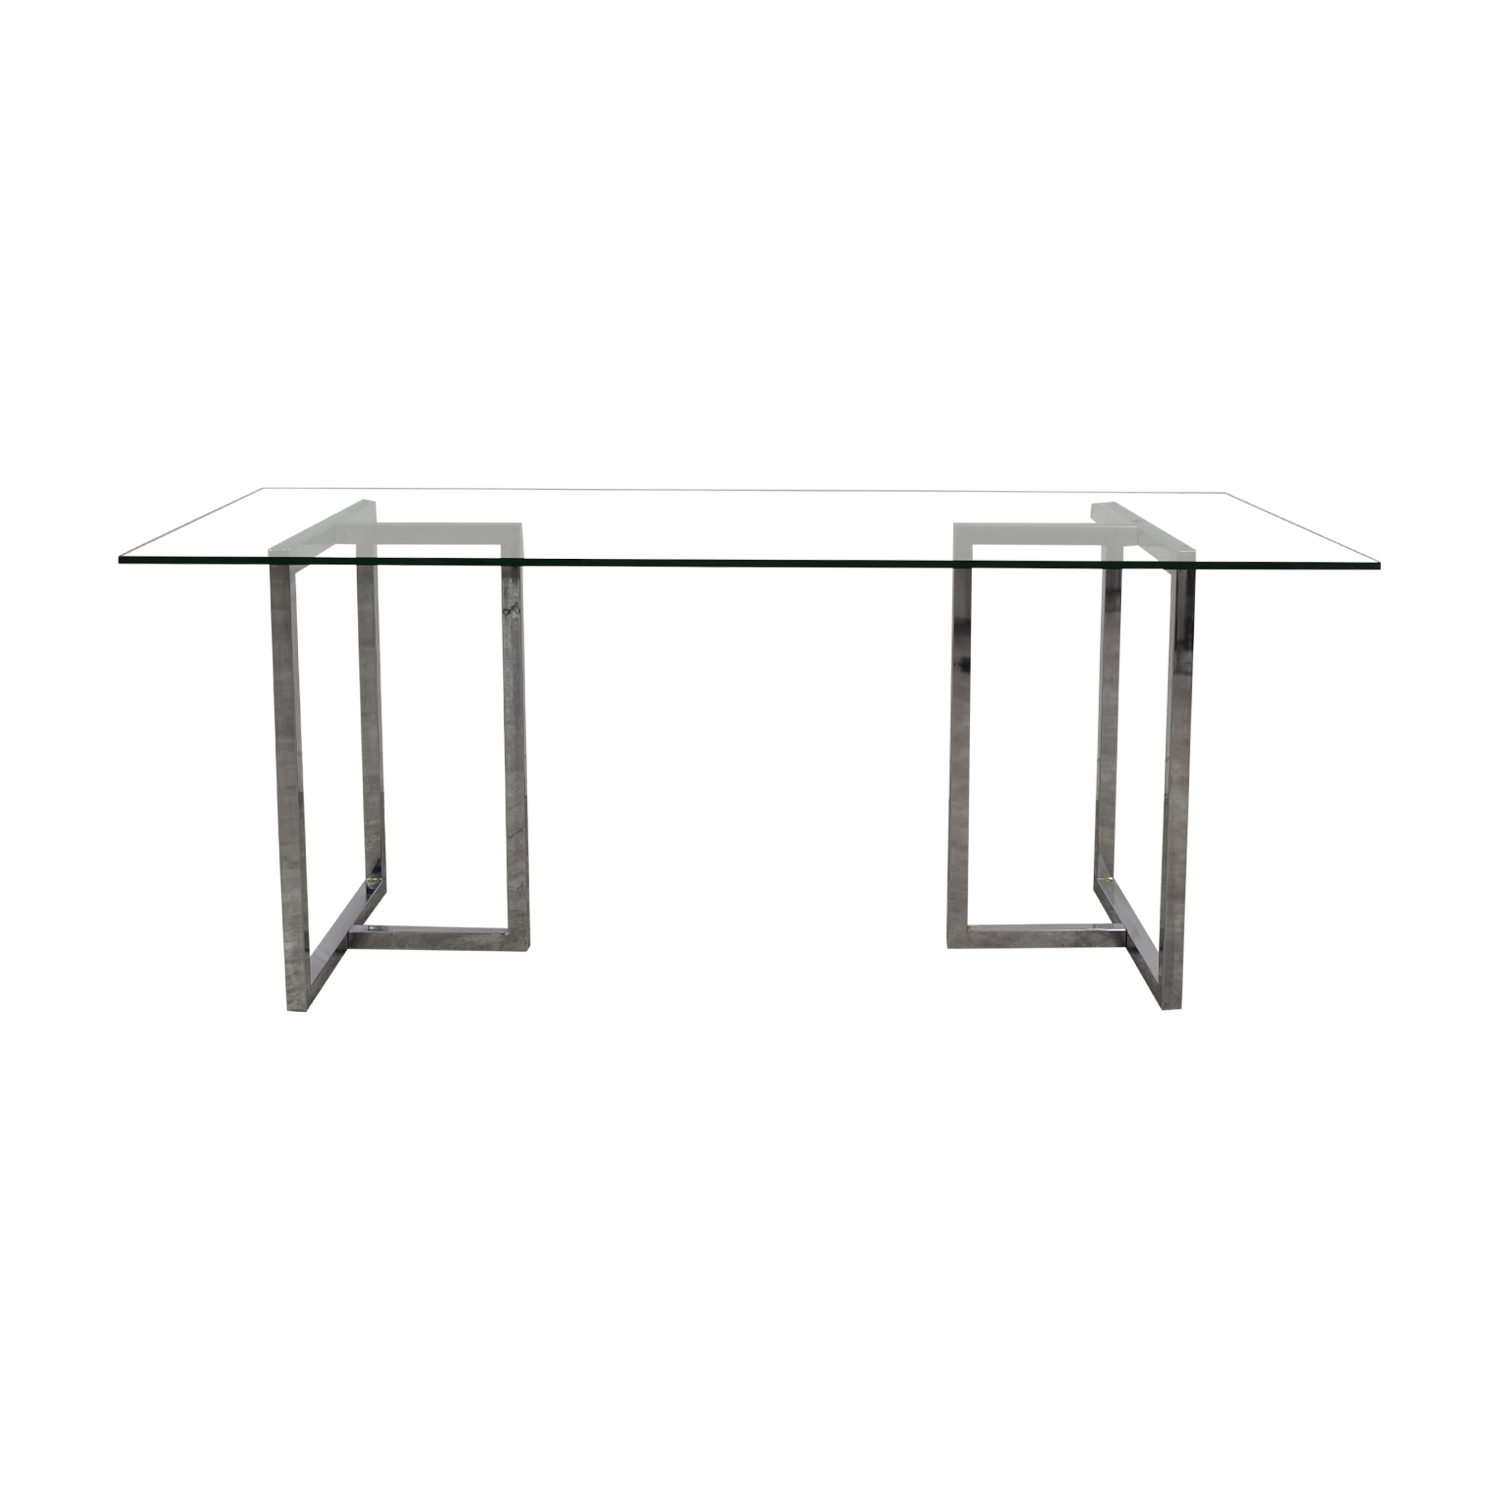 CB2 CB2 Glass and Chrome Table nj